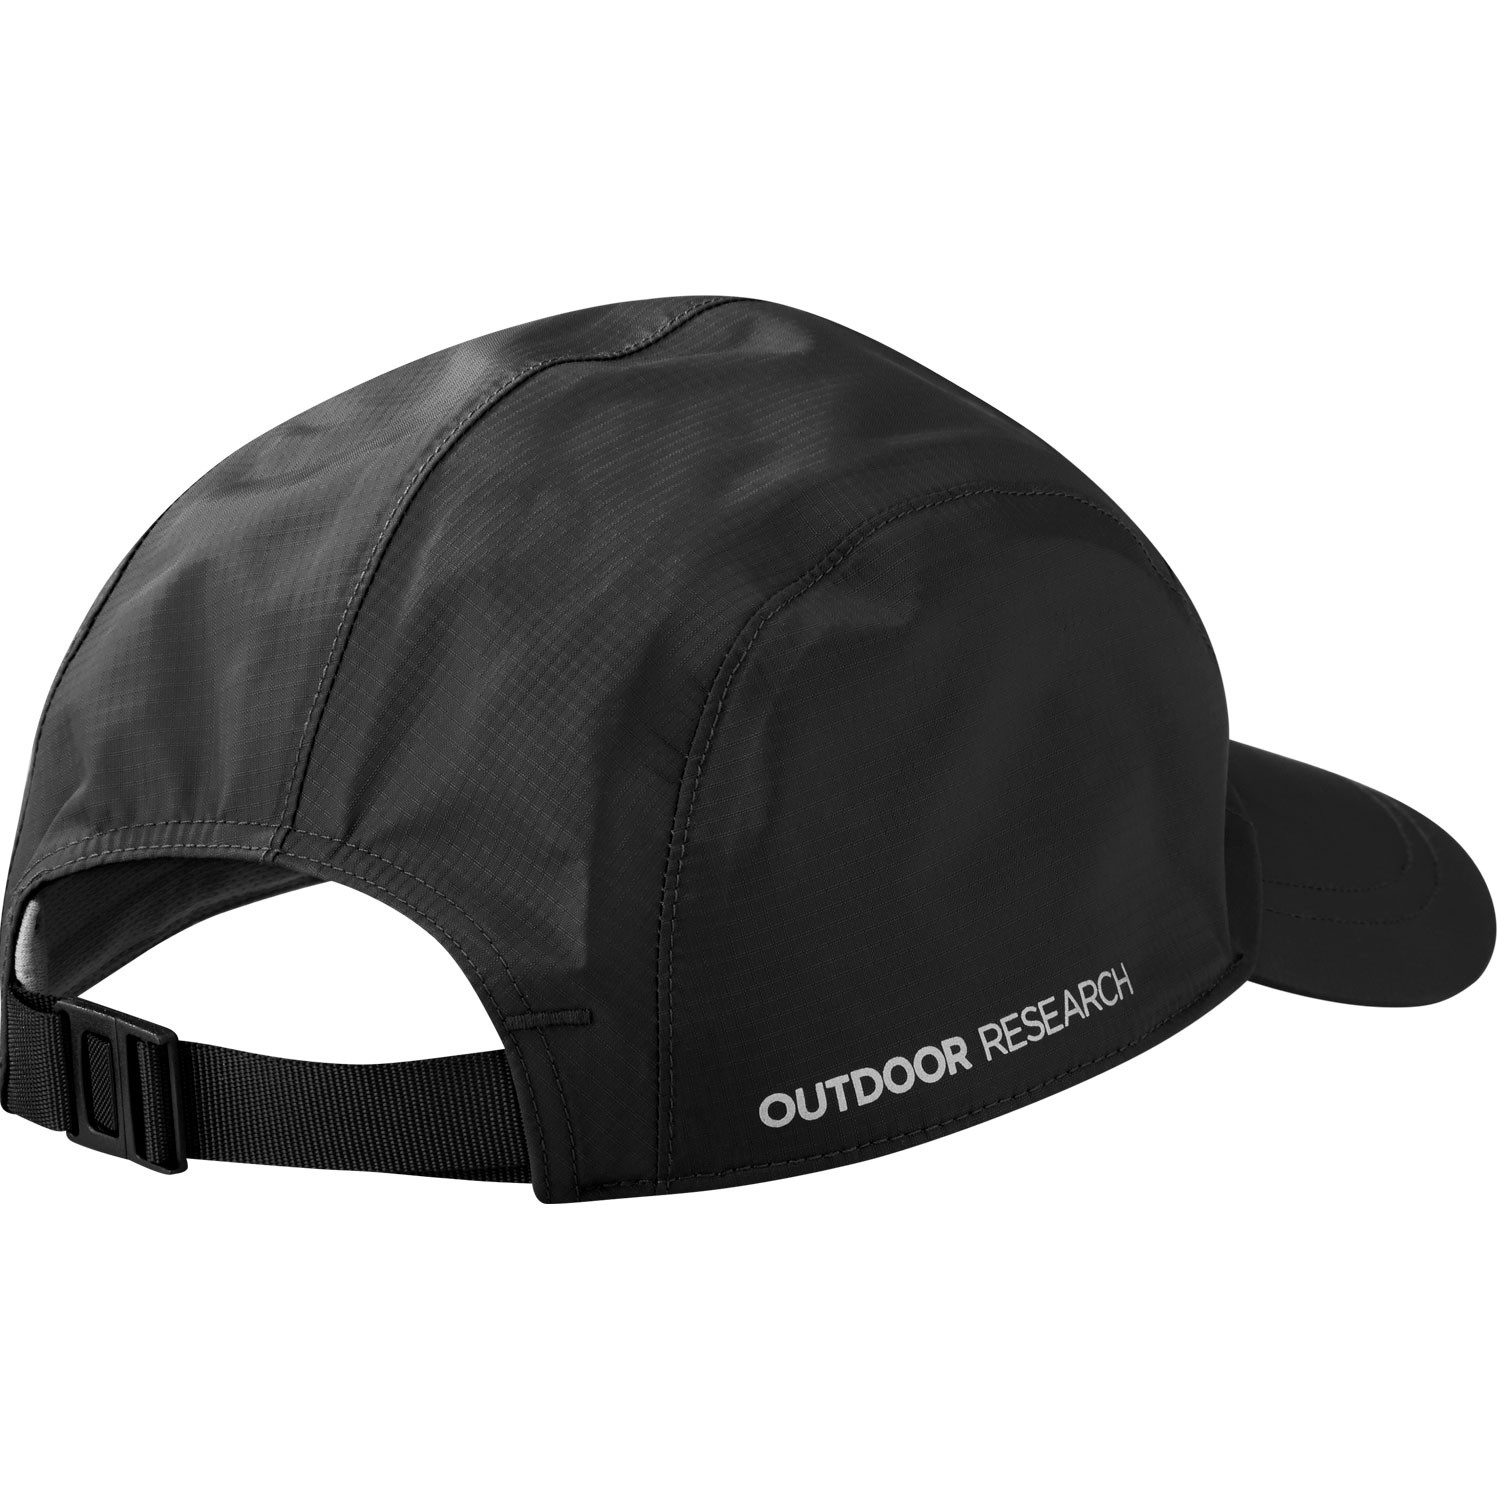 Outdoor Research Halo Rain Cap - Black